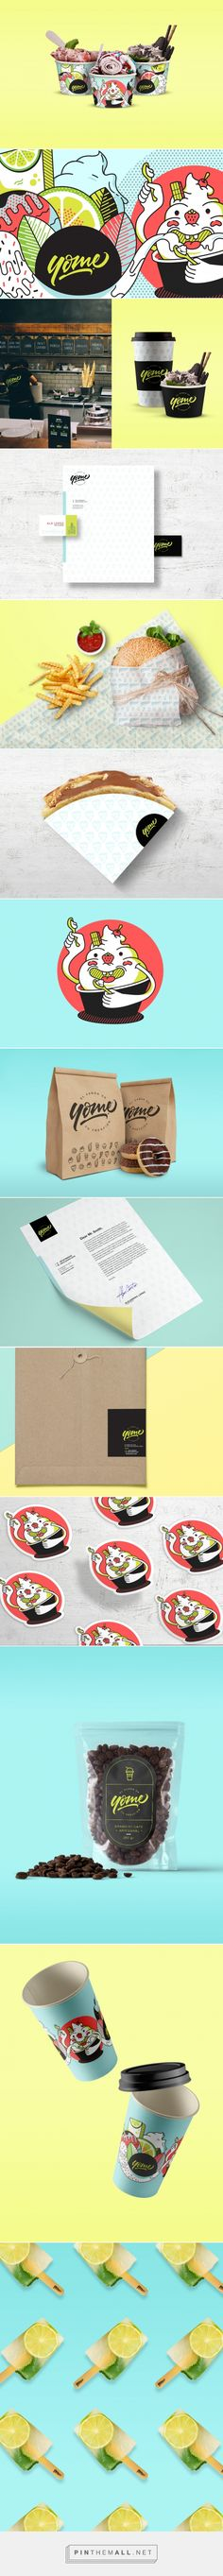 Yome Ice Cream and Eatery Branding and Packaging by Legion Brand | Fivestar Branding Agency – Design and Branding Agency & Curated Inspiration Gallery #branding #brand #brandidentity #packaging #packagingdesign #icecreampackaging #restaurantbranding